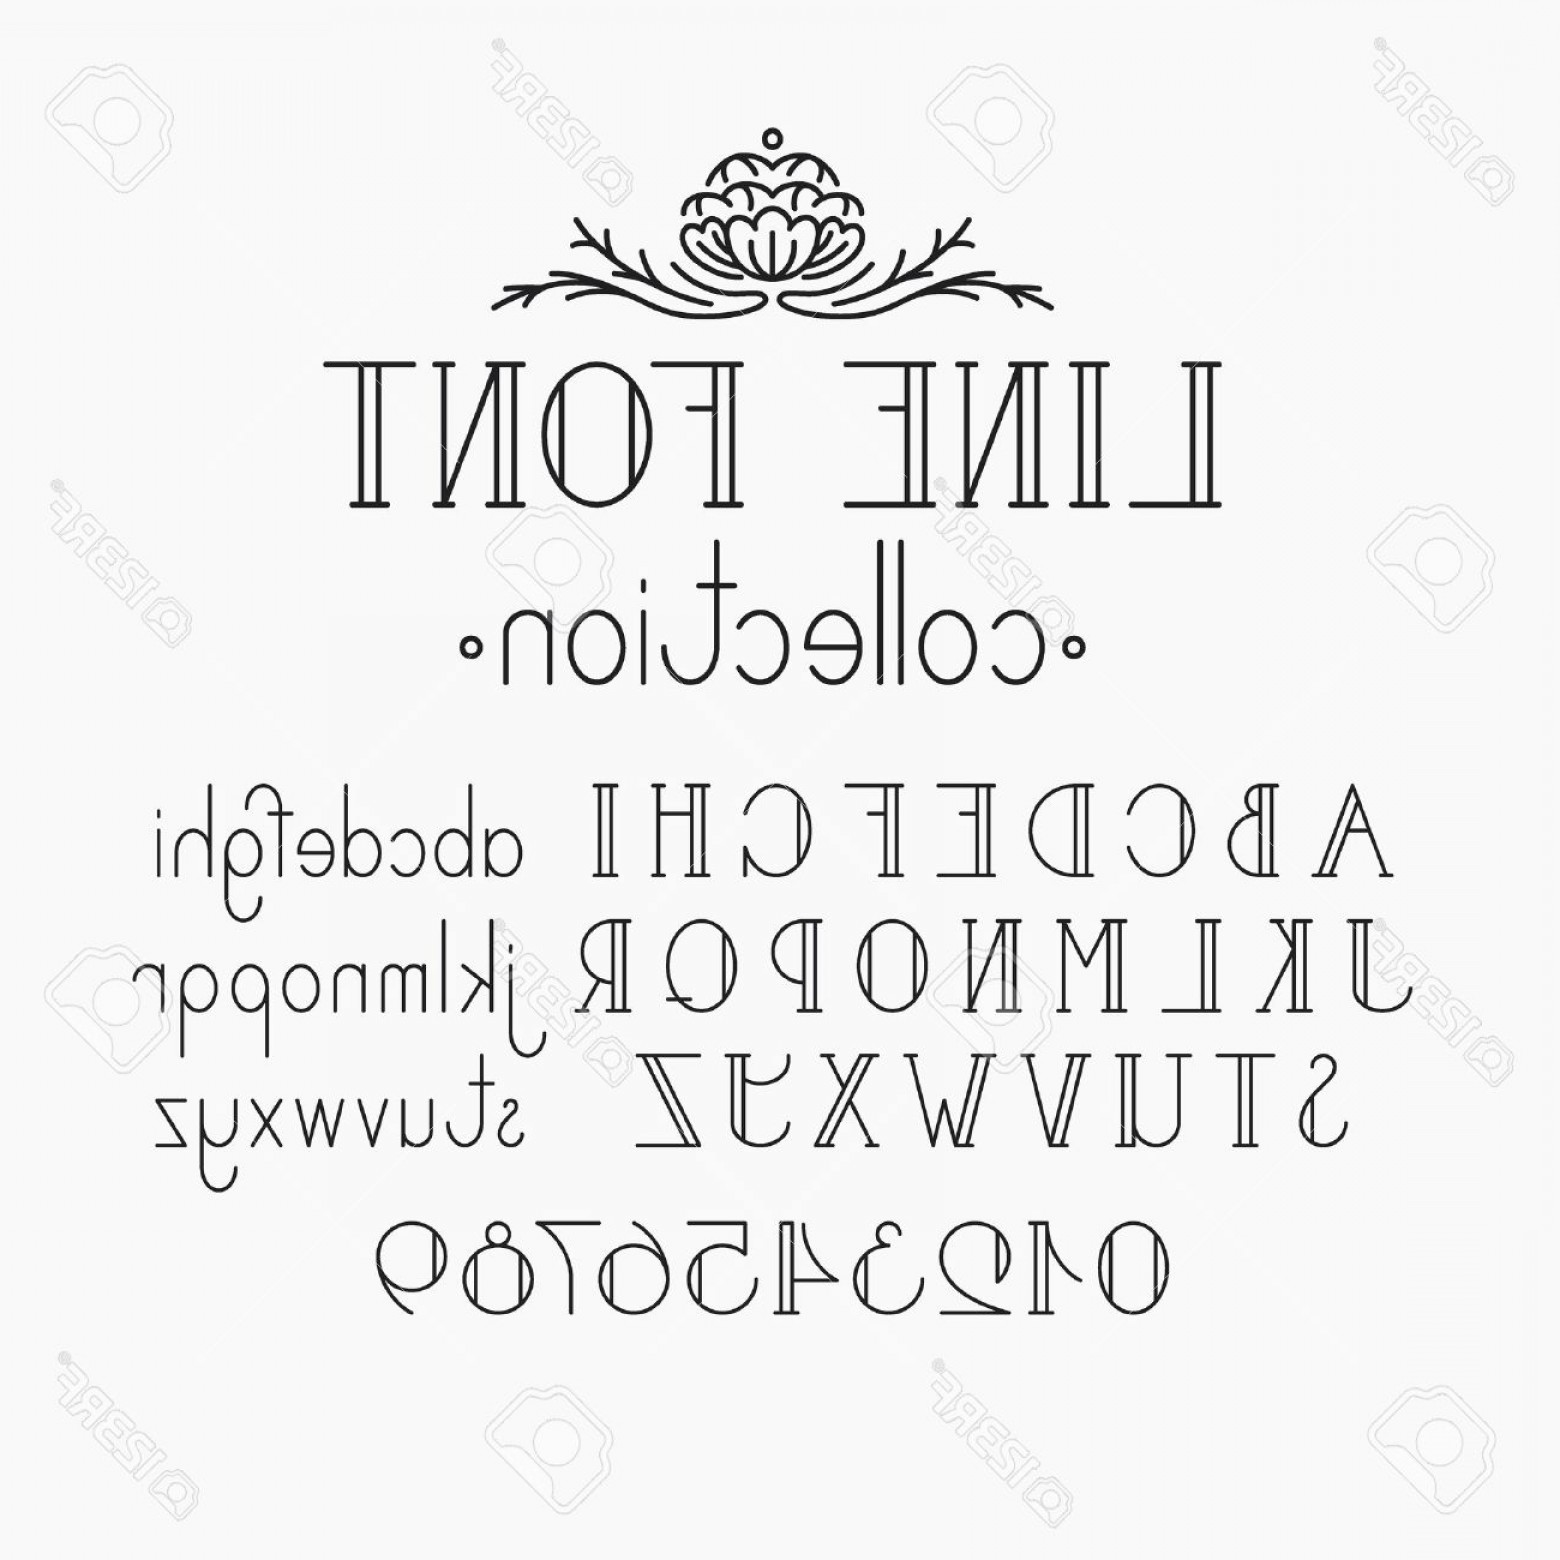 Decorative Font Vector Illustration: Photostock Vector Vector Mono Line Decorative Font Latin Alphabet Of Vintage Outline Letters Capitals Smalls And Numer